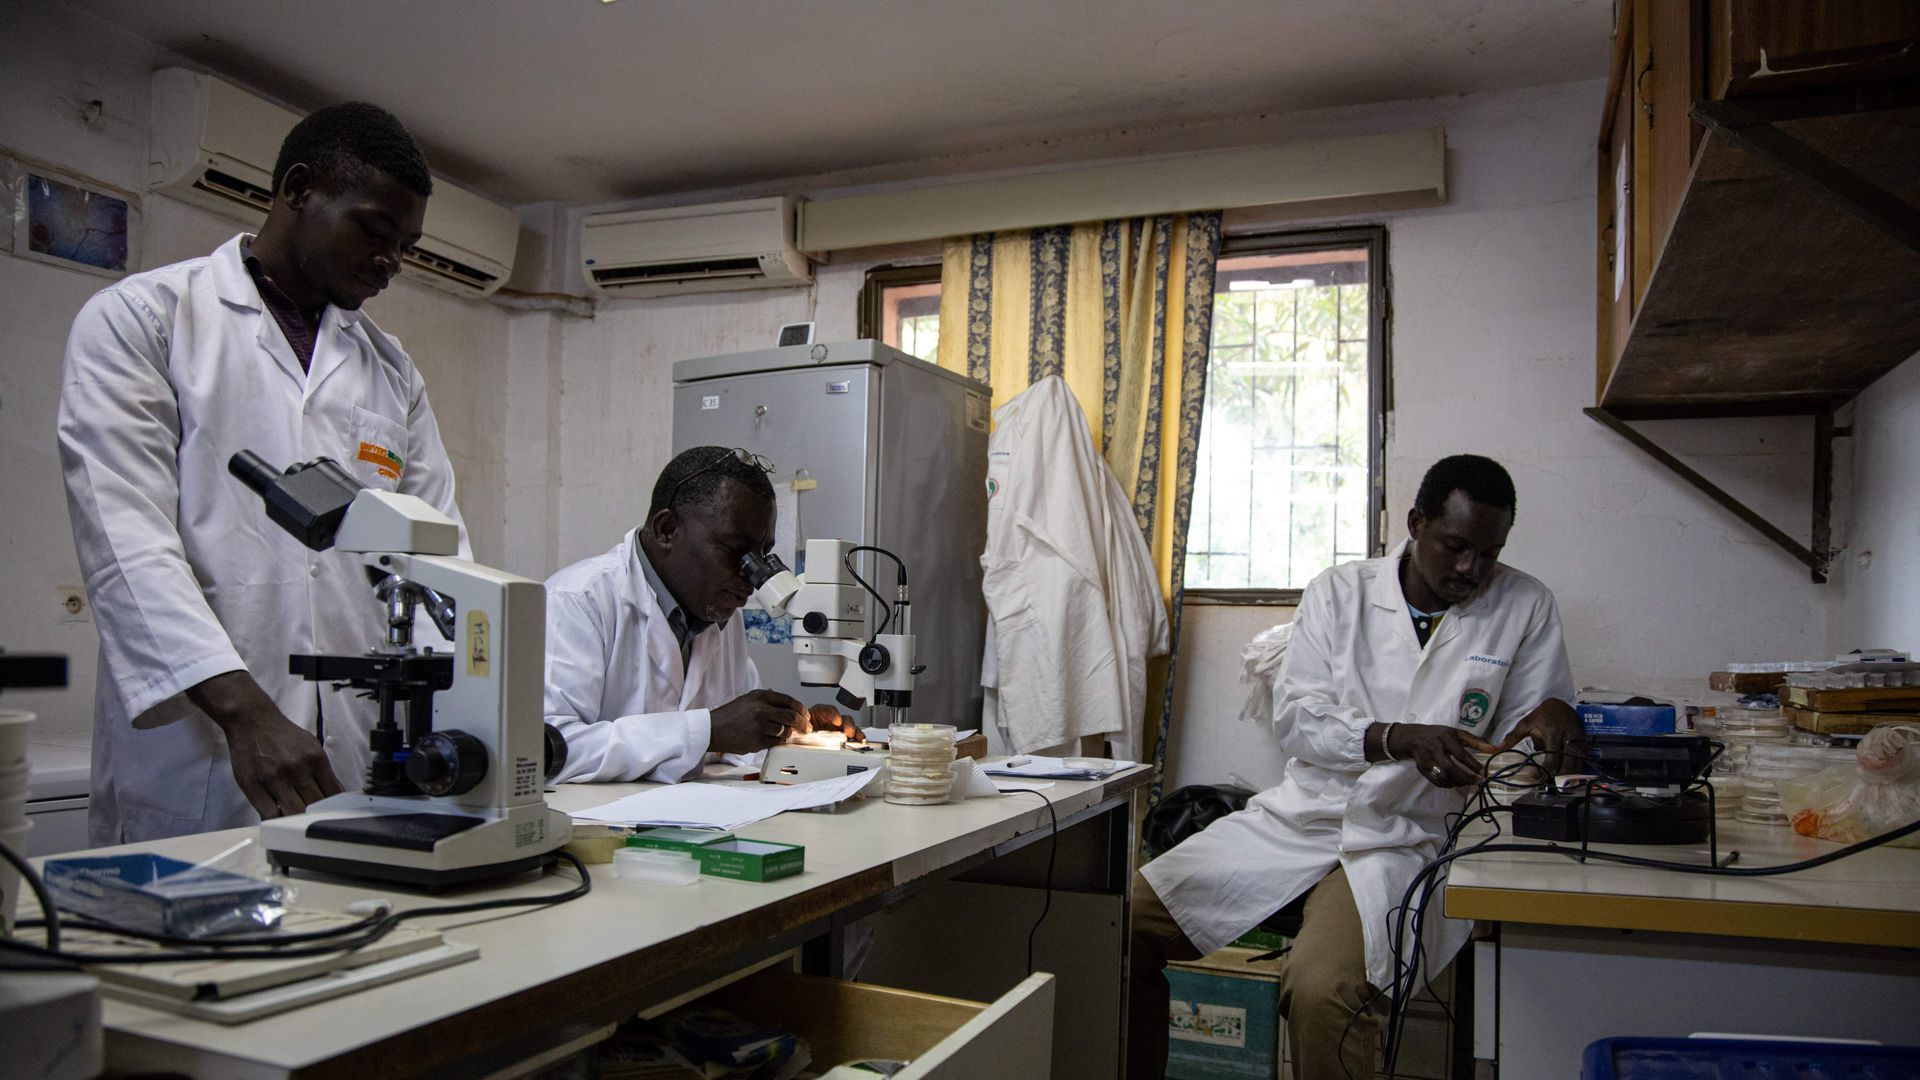 With key funding in the balance, a study argues malaria eradication may be possible by 2050